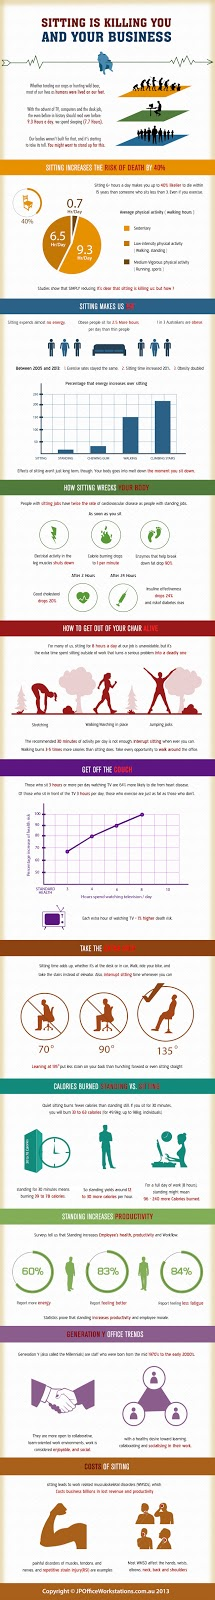 Infographic Sitting is Killing You and Your Business - Infographic Future of Work